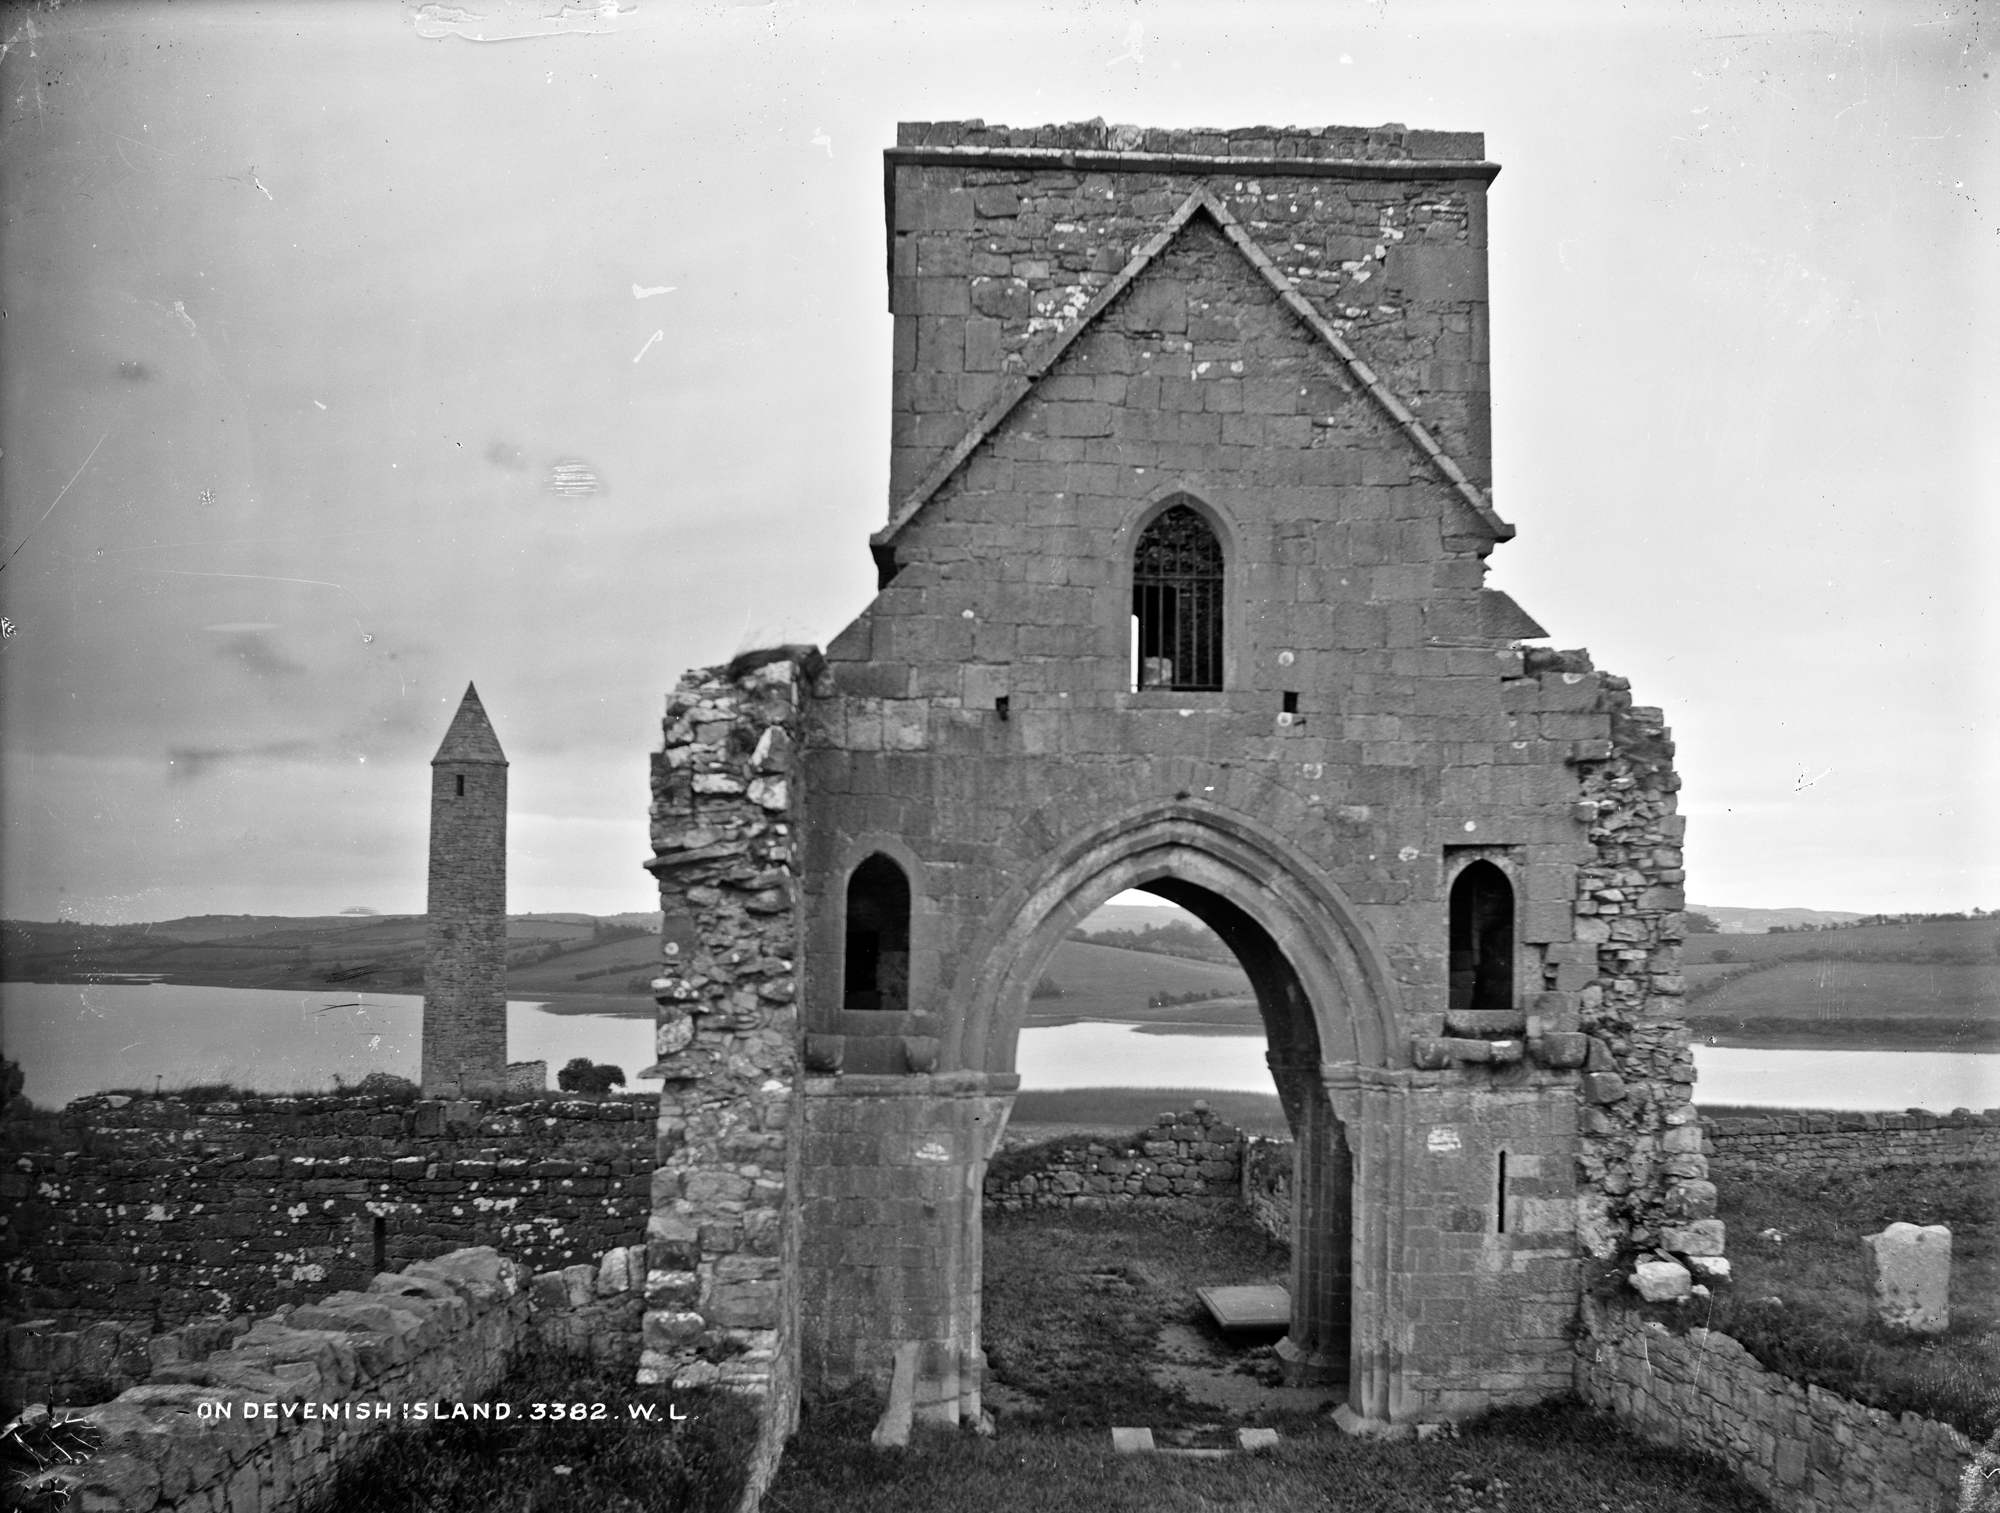 On Devenish Island Lower Lough Erne, Co. Fermanagh